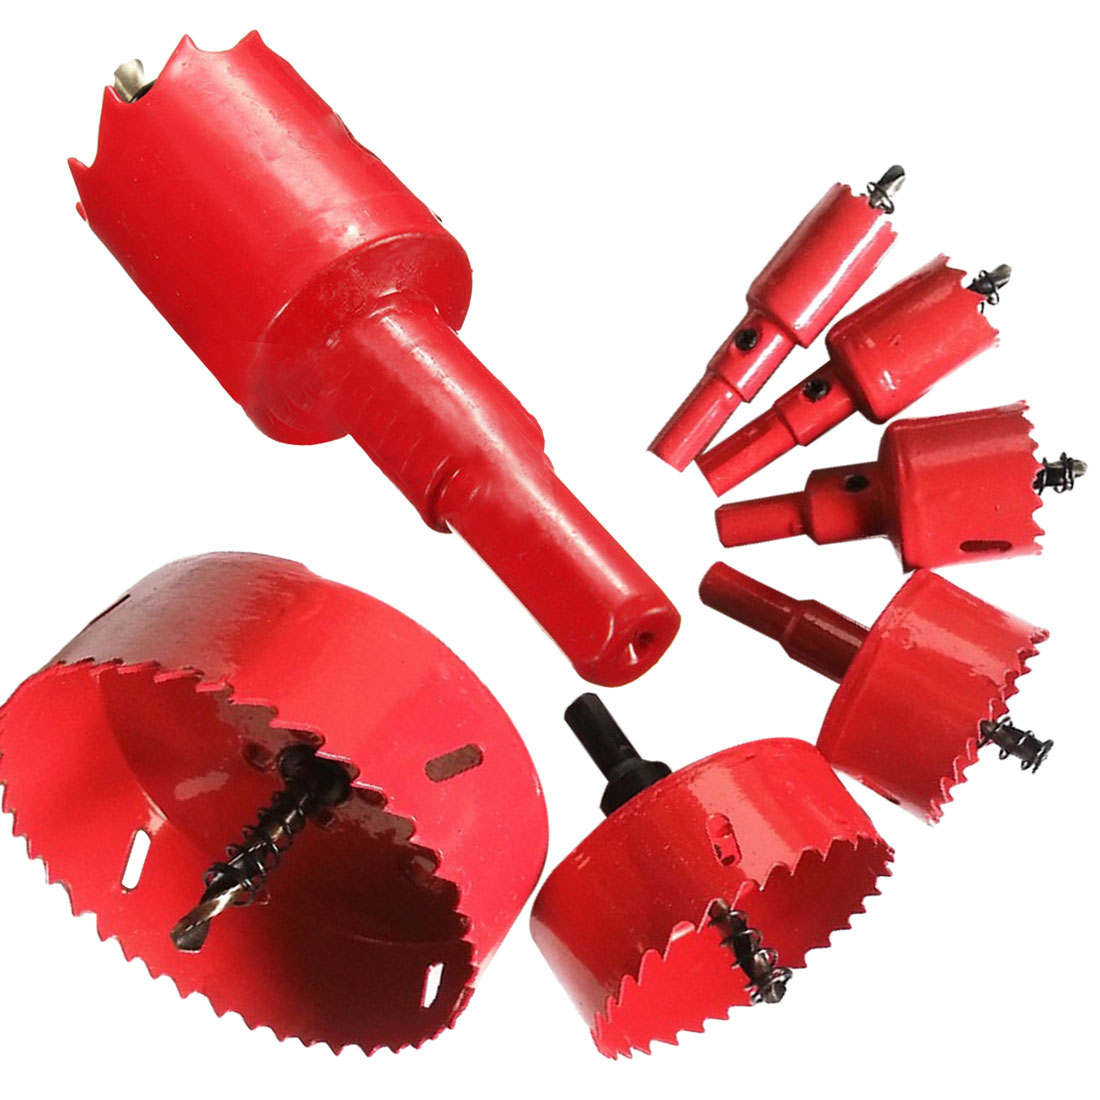 Twist Drill Bits Cutter 16mm-50mm Drill Bit Hole Saw Power Tool Metal Holes Drilling Kit Carpentry Tools for Wood Steel Iron